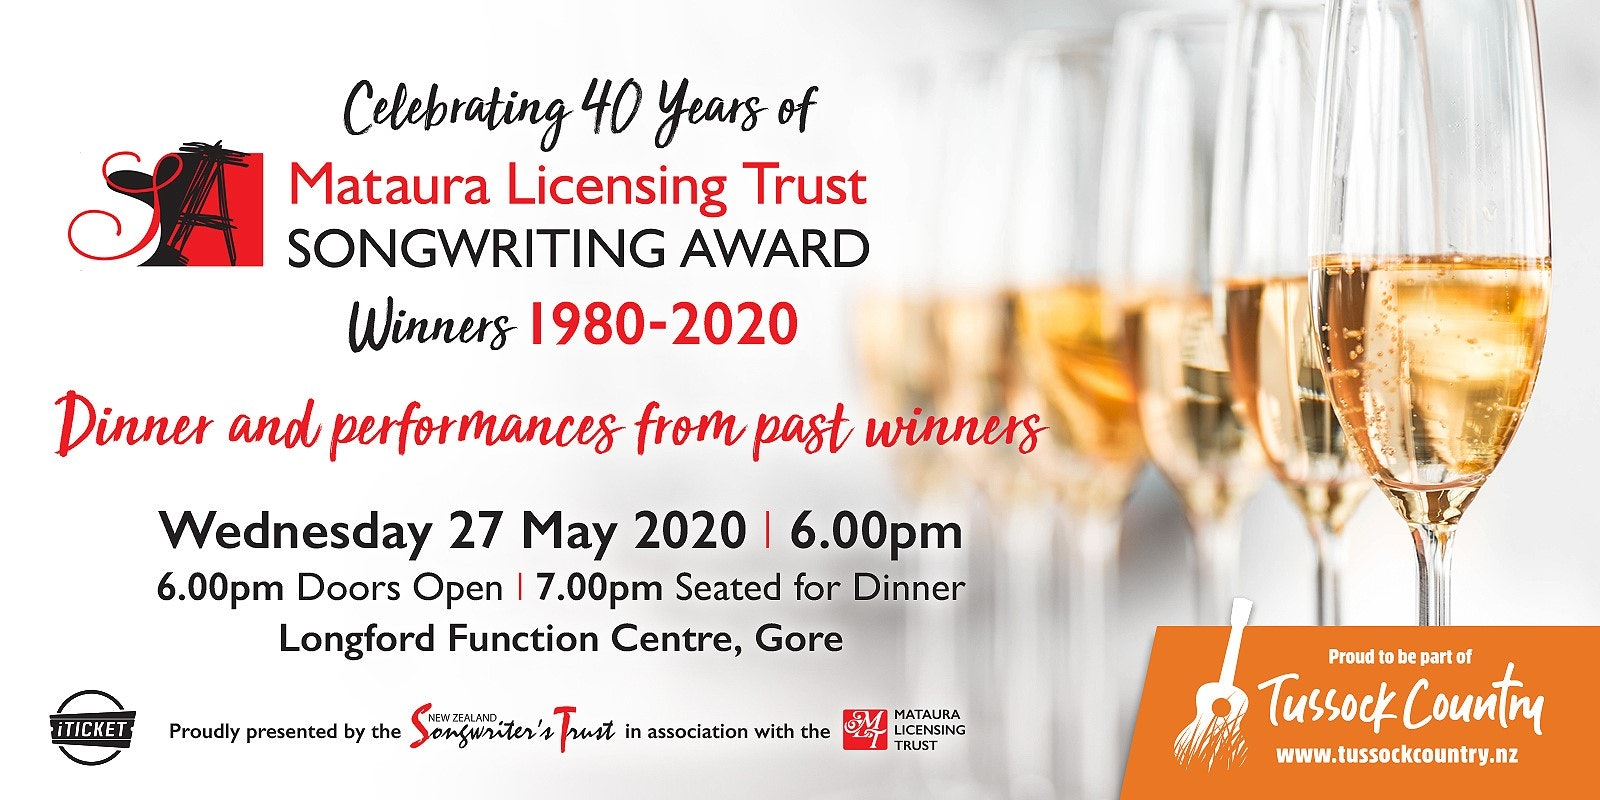 MLT Songwriting Awards 40th Anniversary Event